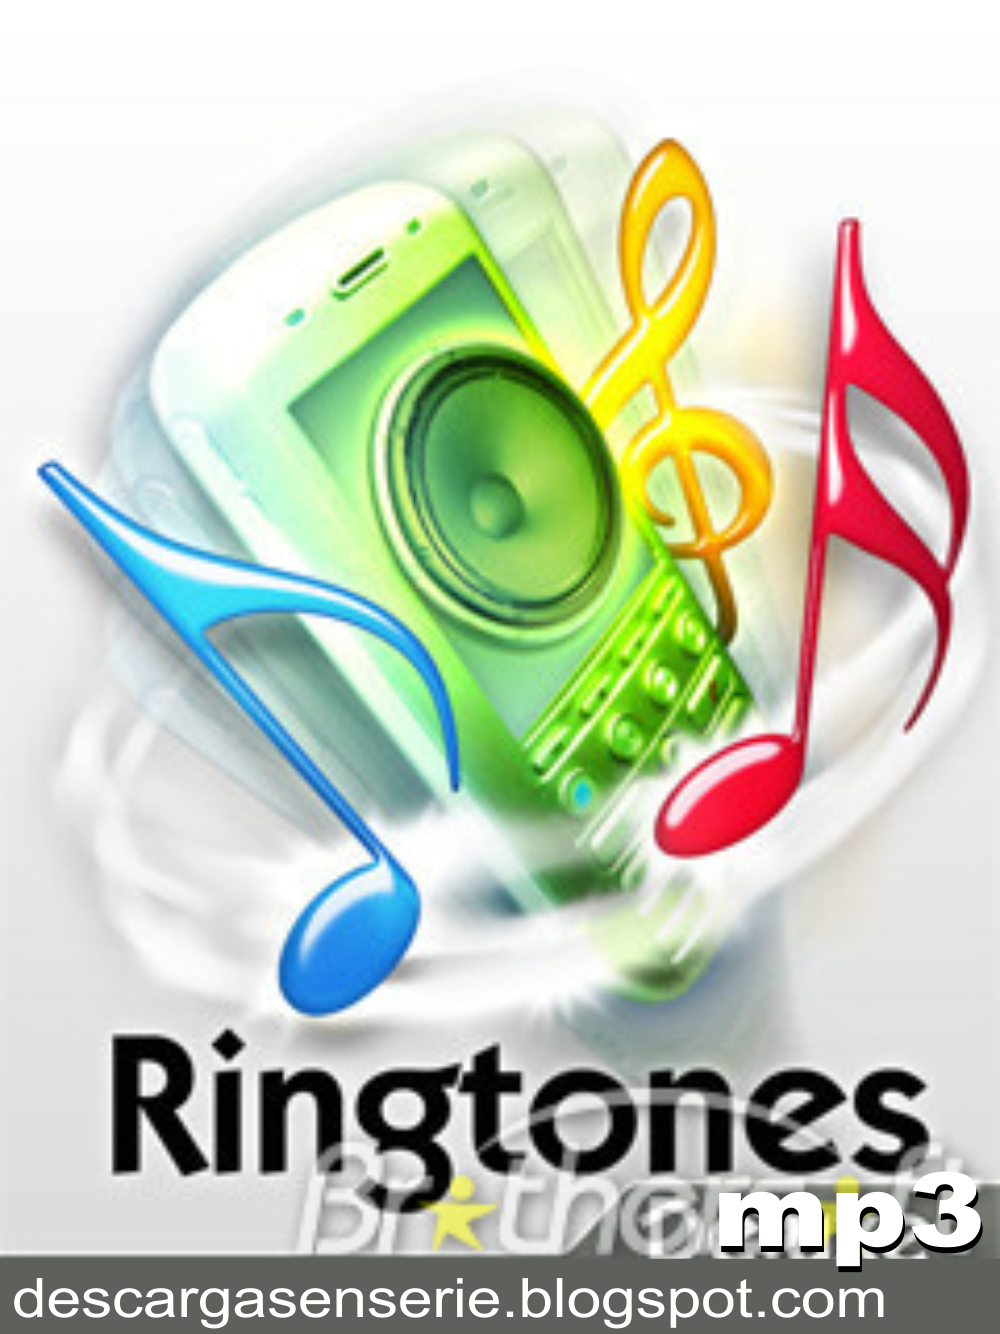 Elias's blog free mp3 ringtones in tamil.